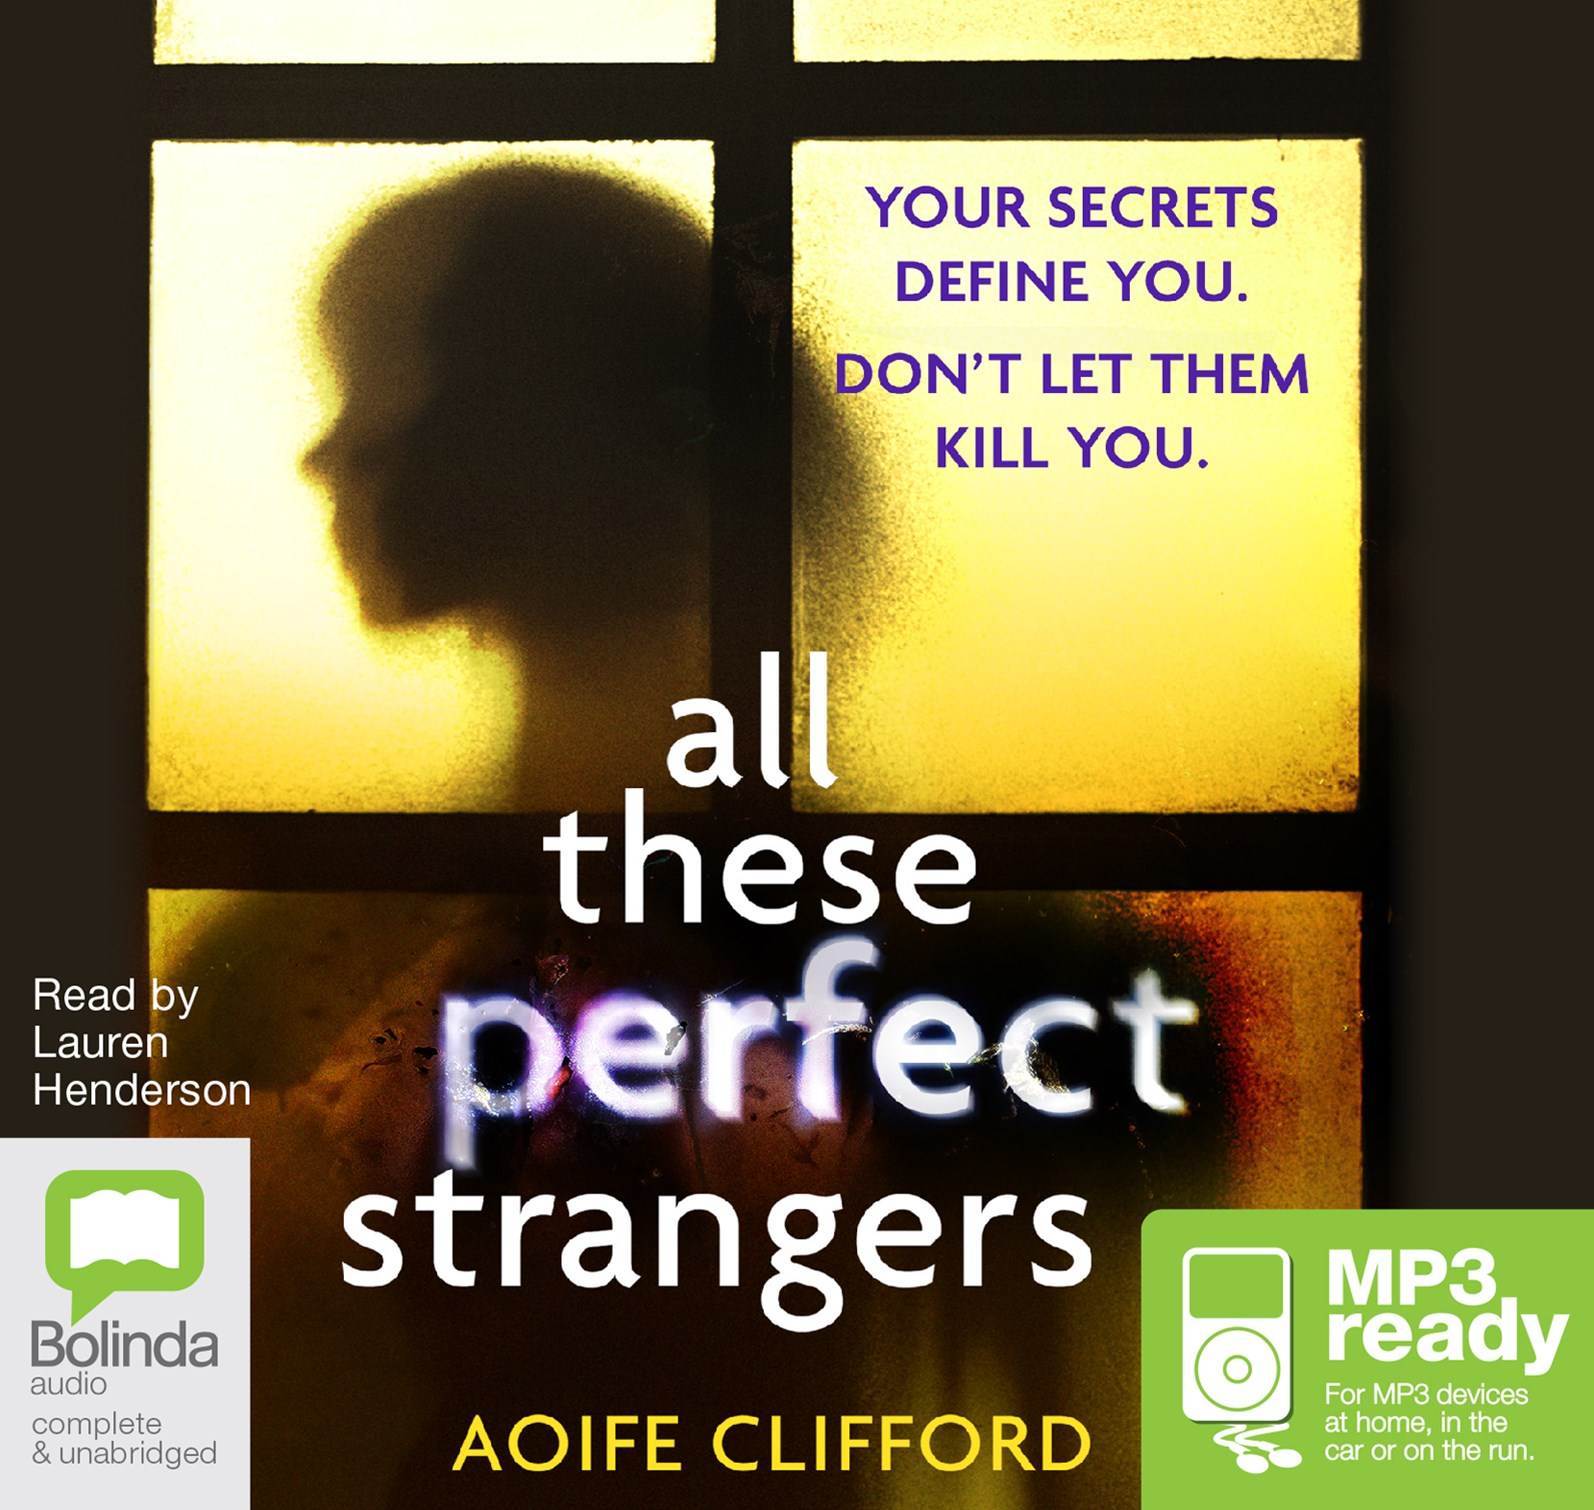 ALL THESE PERFECT STRANGERS MP3